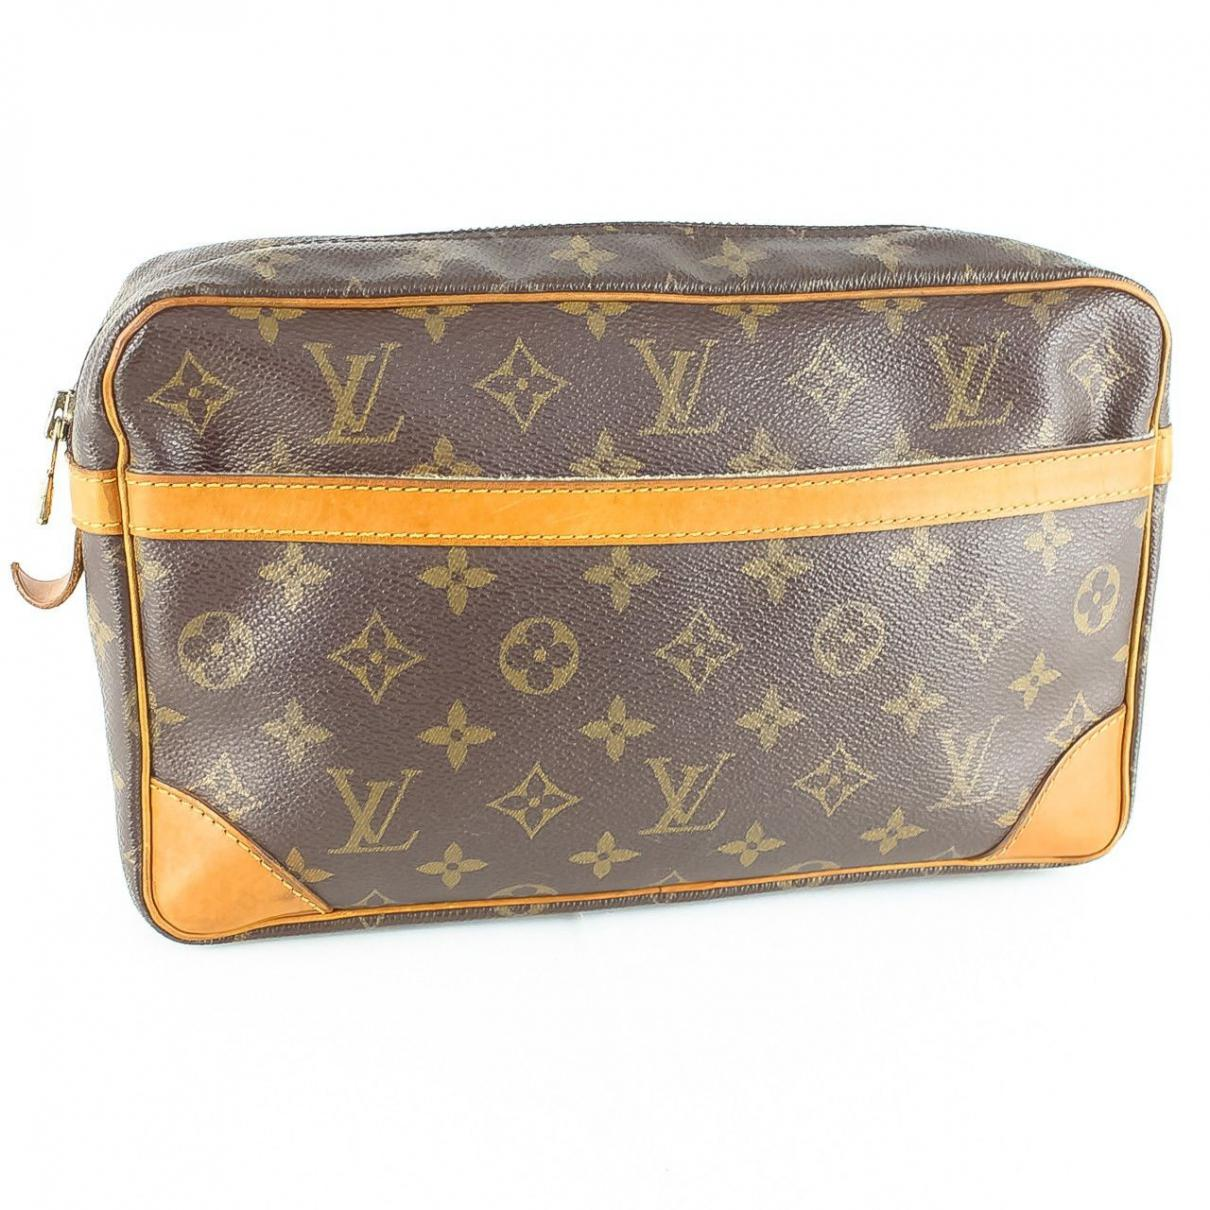 f12859af47e87 Lyst - Louis Vuitton Pre-owned Leather Clutch Bag in Brown